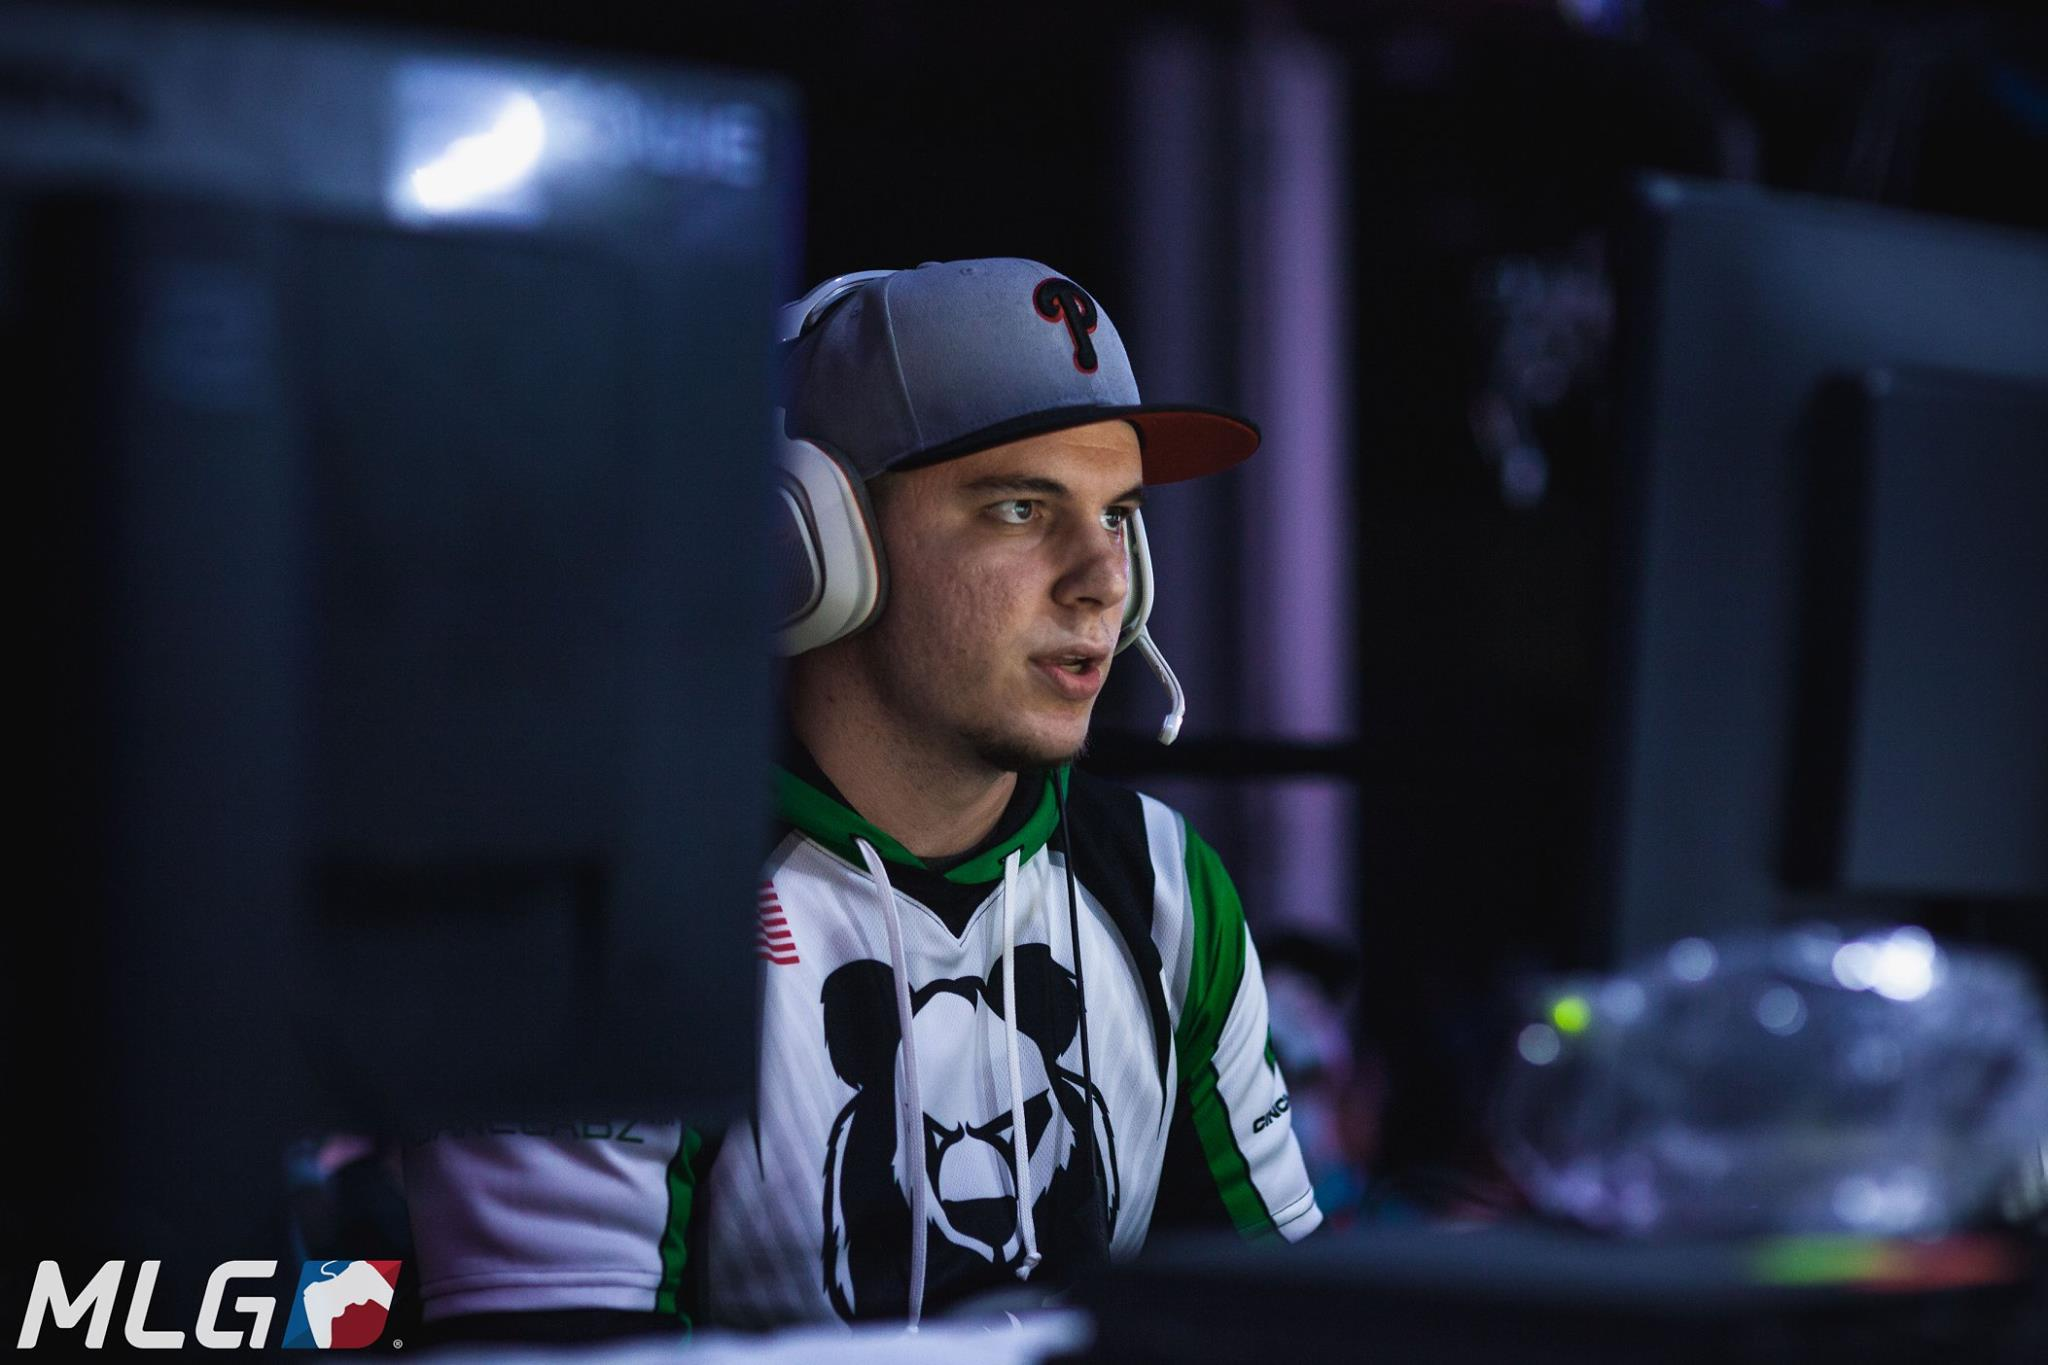 Prophet at MLG Vegas 2016. Image courtesy of MLG.